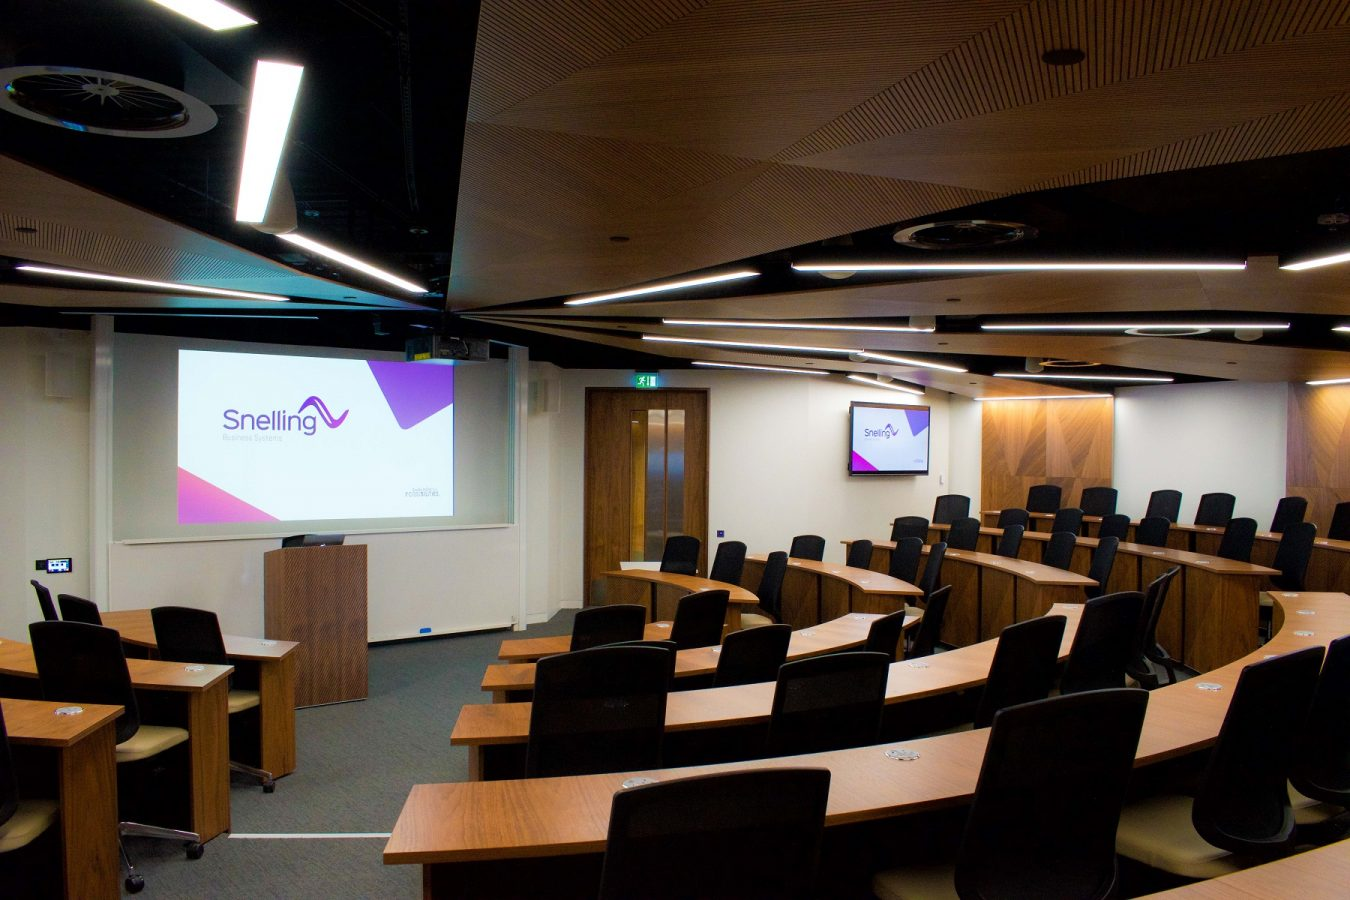 UCL Management School Case Study| Lecture Theatre | Snelling